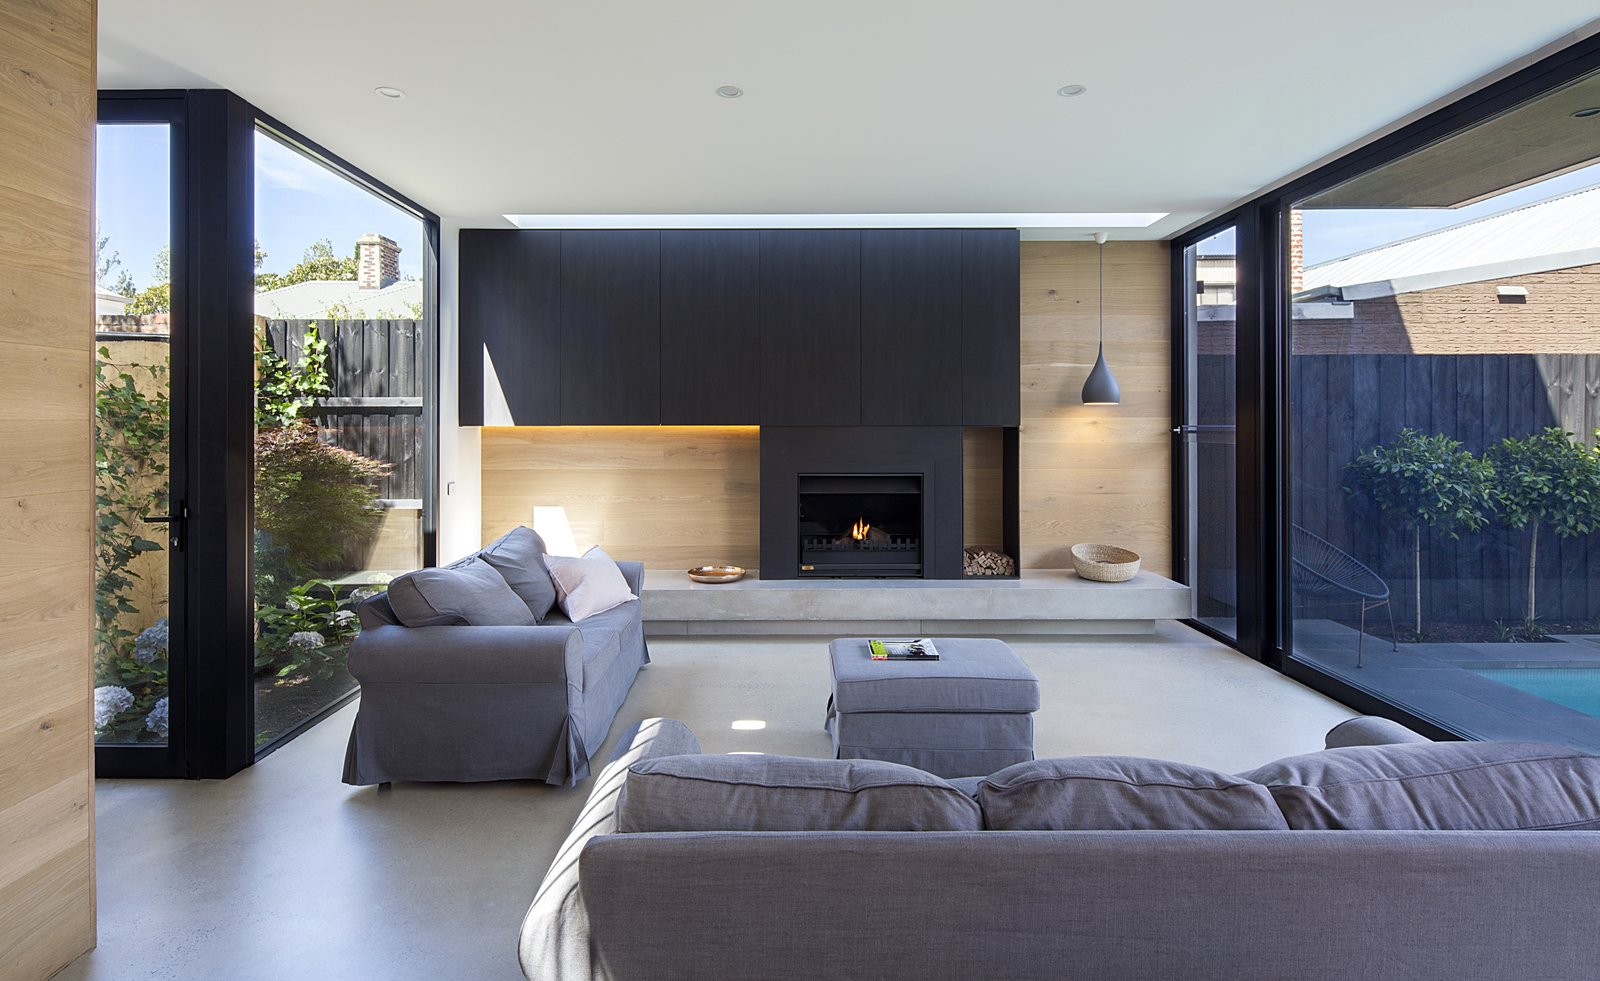 Living Room, Wood Burning Fireplace, Concrete Floor, Sofa, Ottomans, Recessed Lighting, Standard Layout Fireplace, and Pendant Lighting A modest polished concrete slab floor with hydronic in-slab heating anchors the new, open-concept living spaces.  Photo 2 of 11 in A Streamlined Addition Serves a Family of Four in Australia